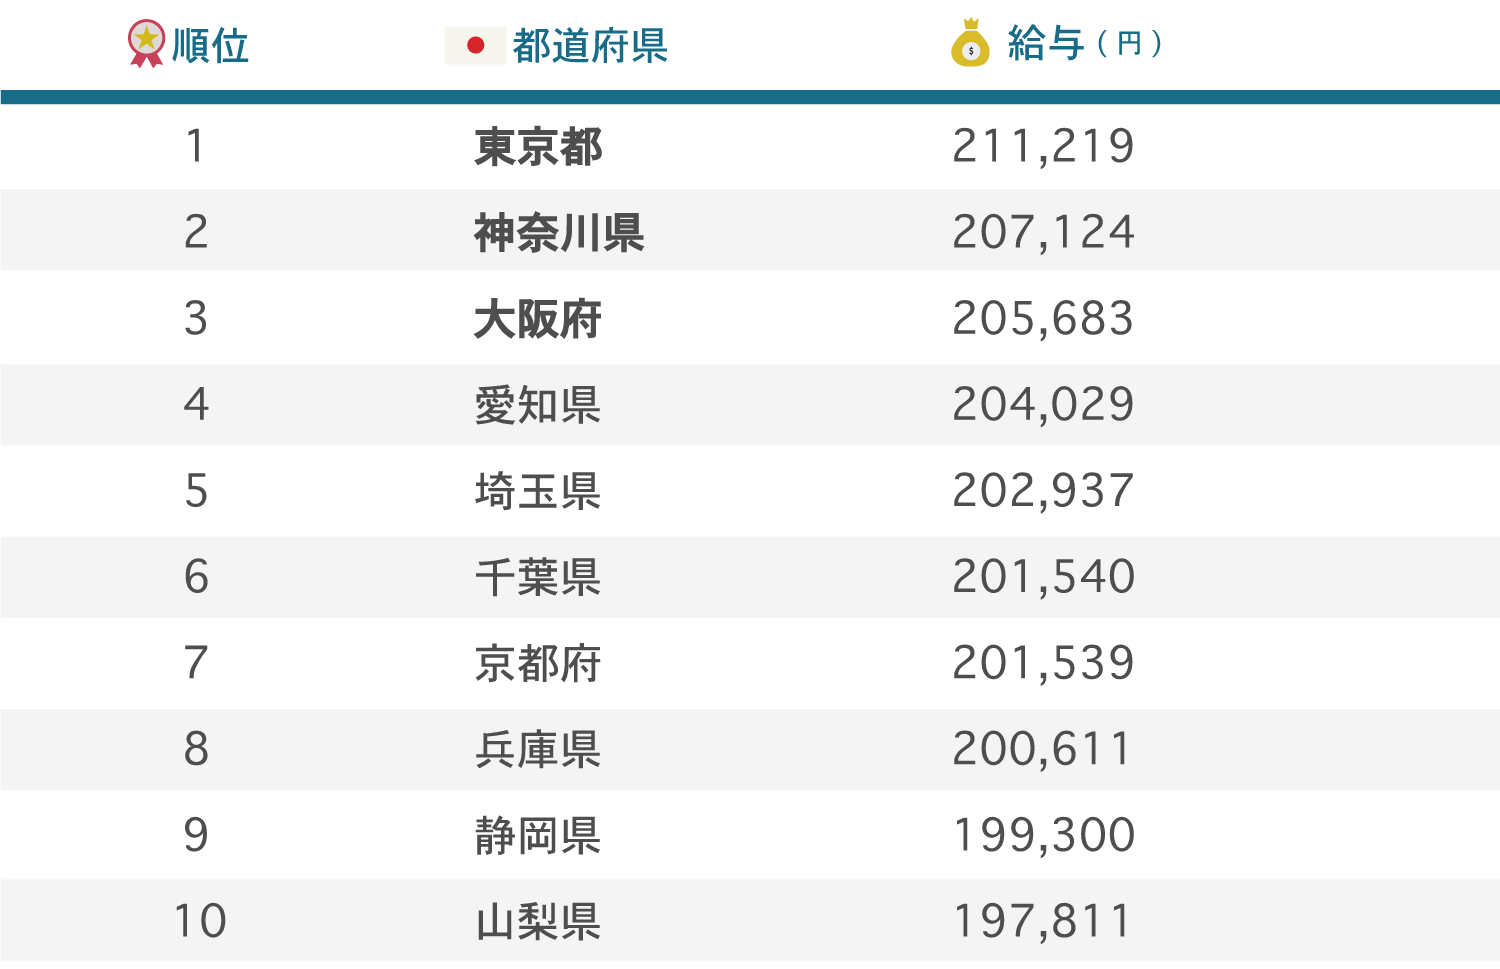 Prefectures_ranking